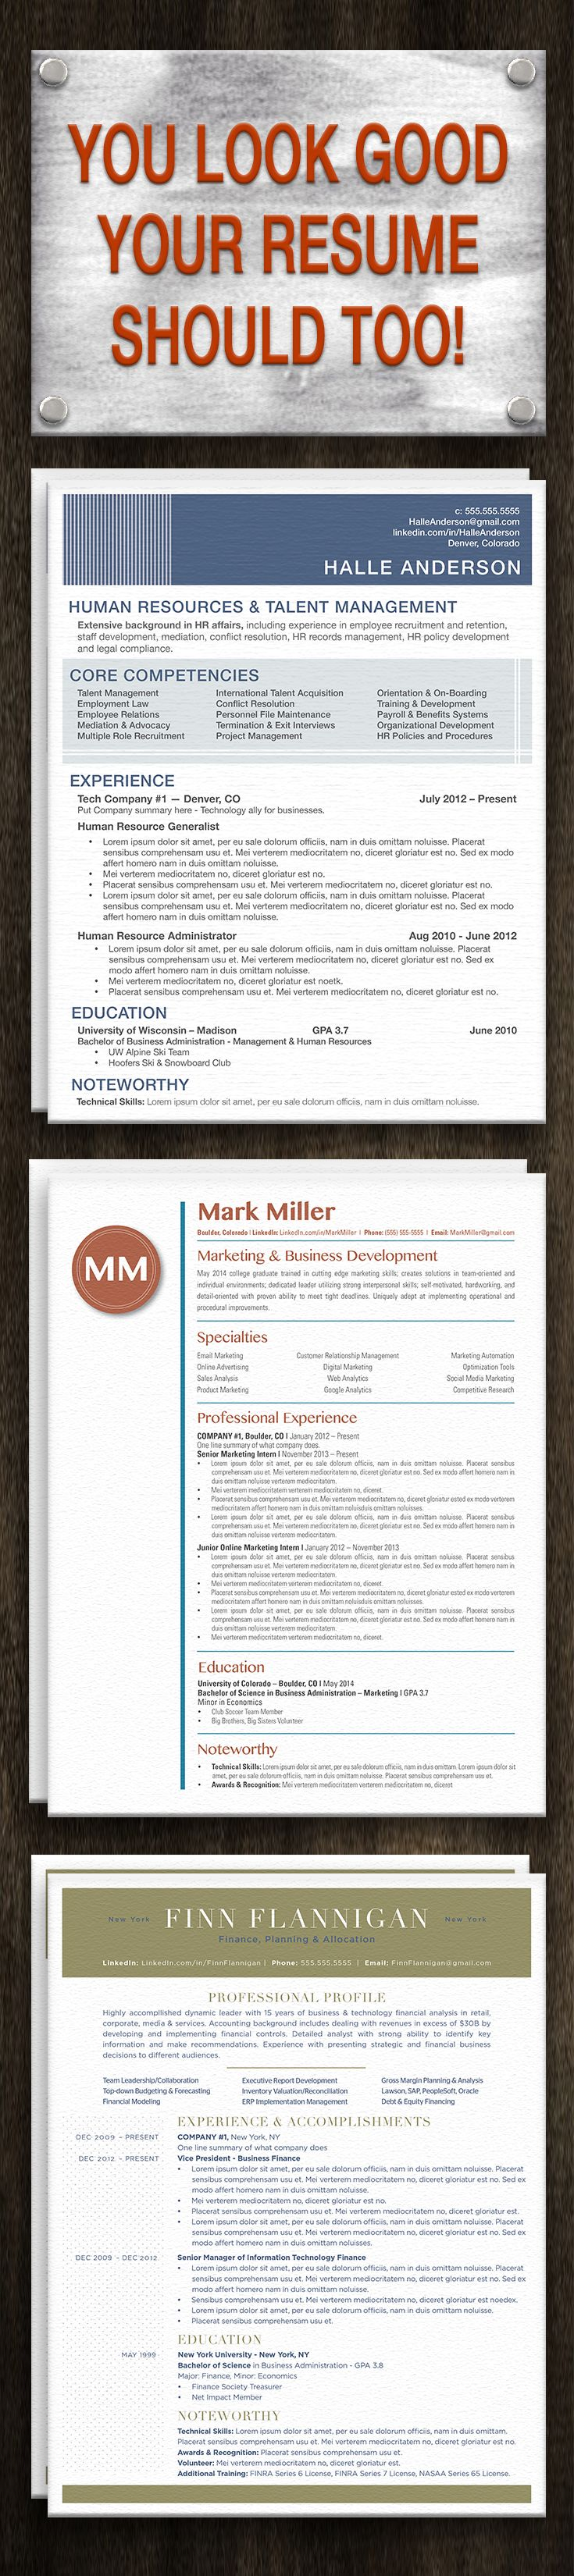 Your resume should look as good as you do!